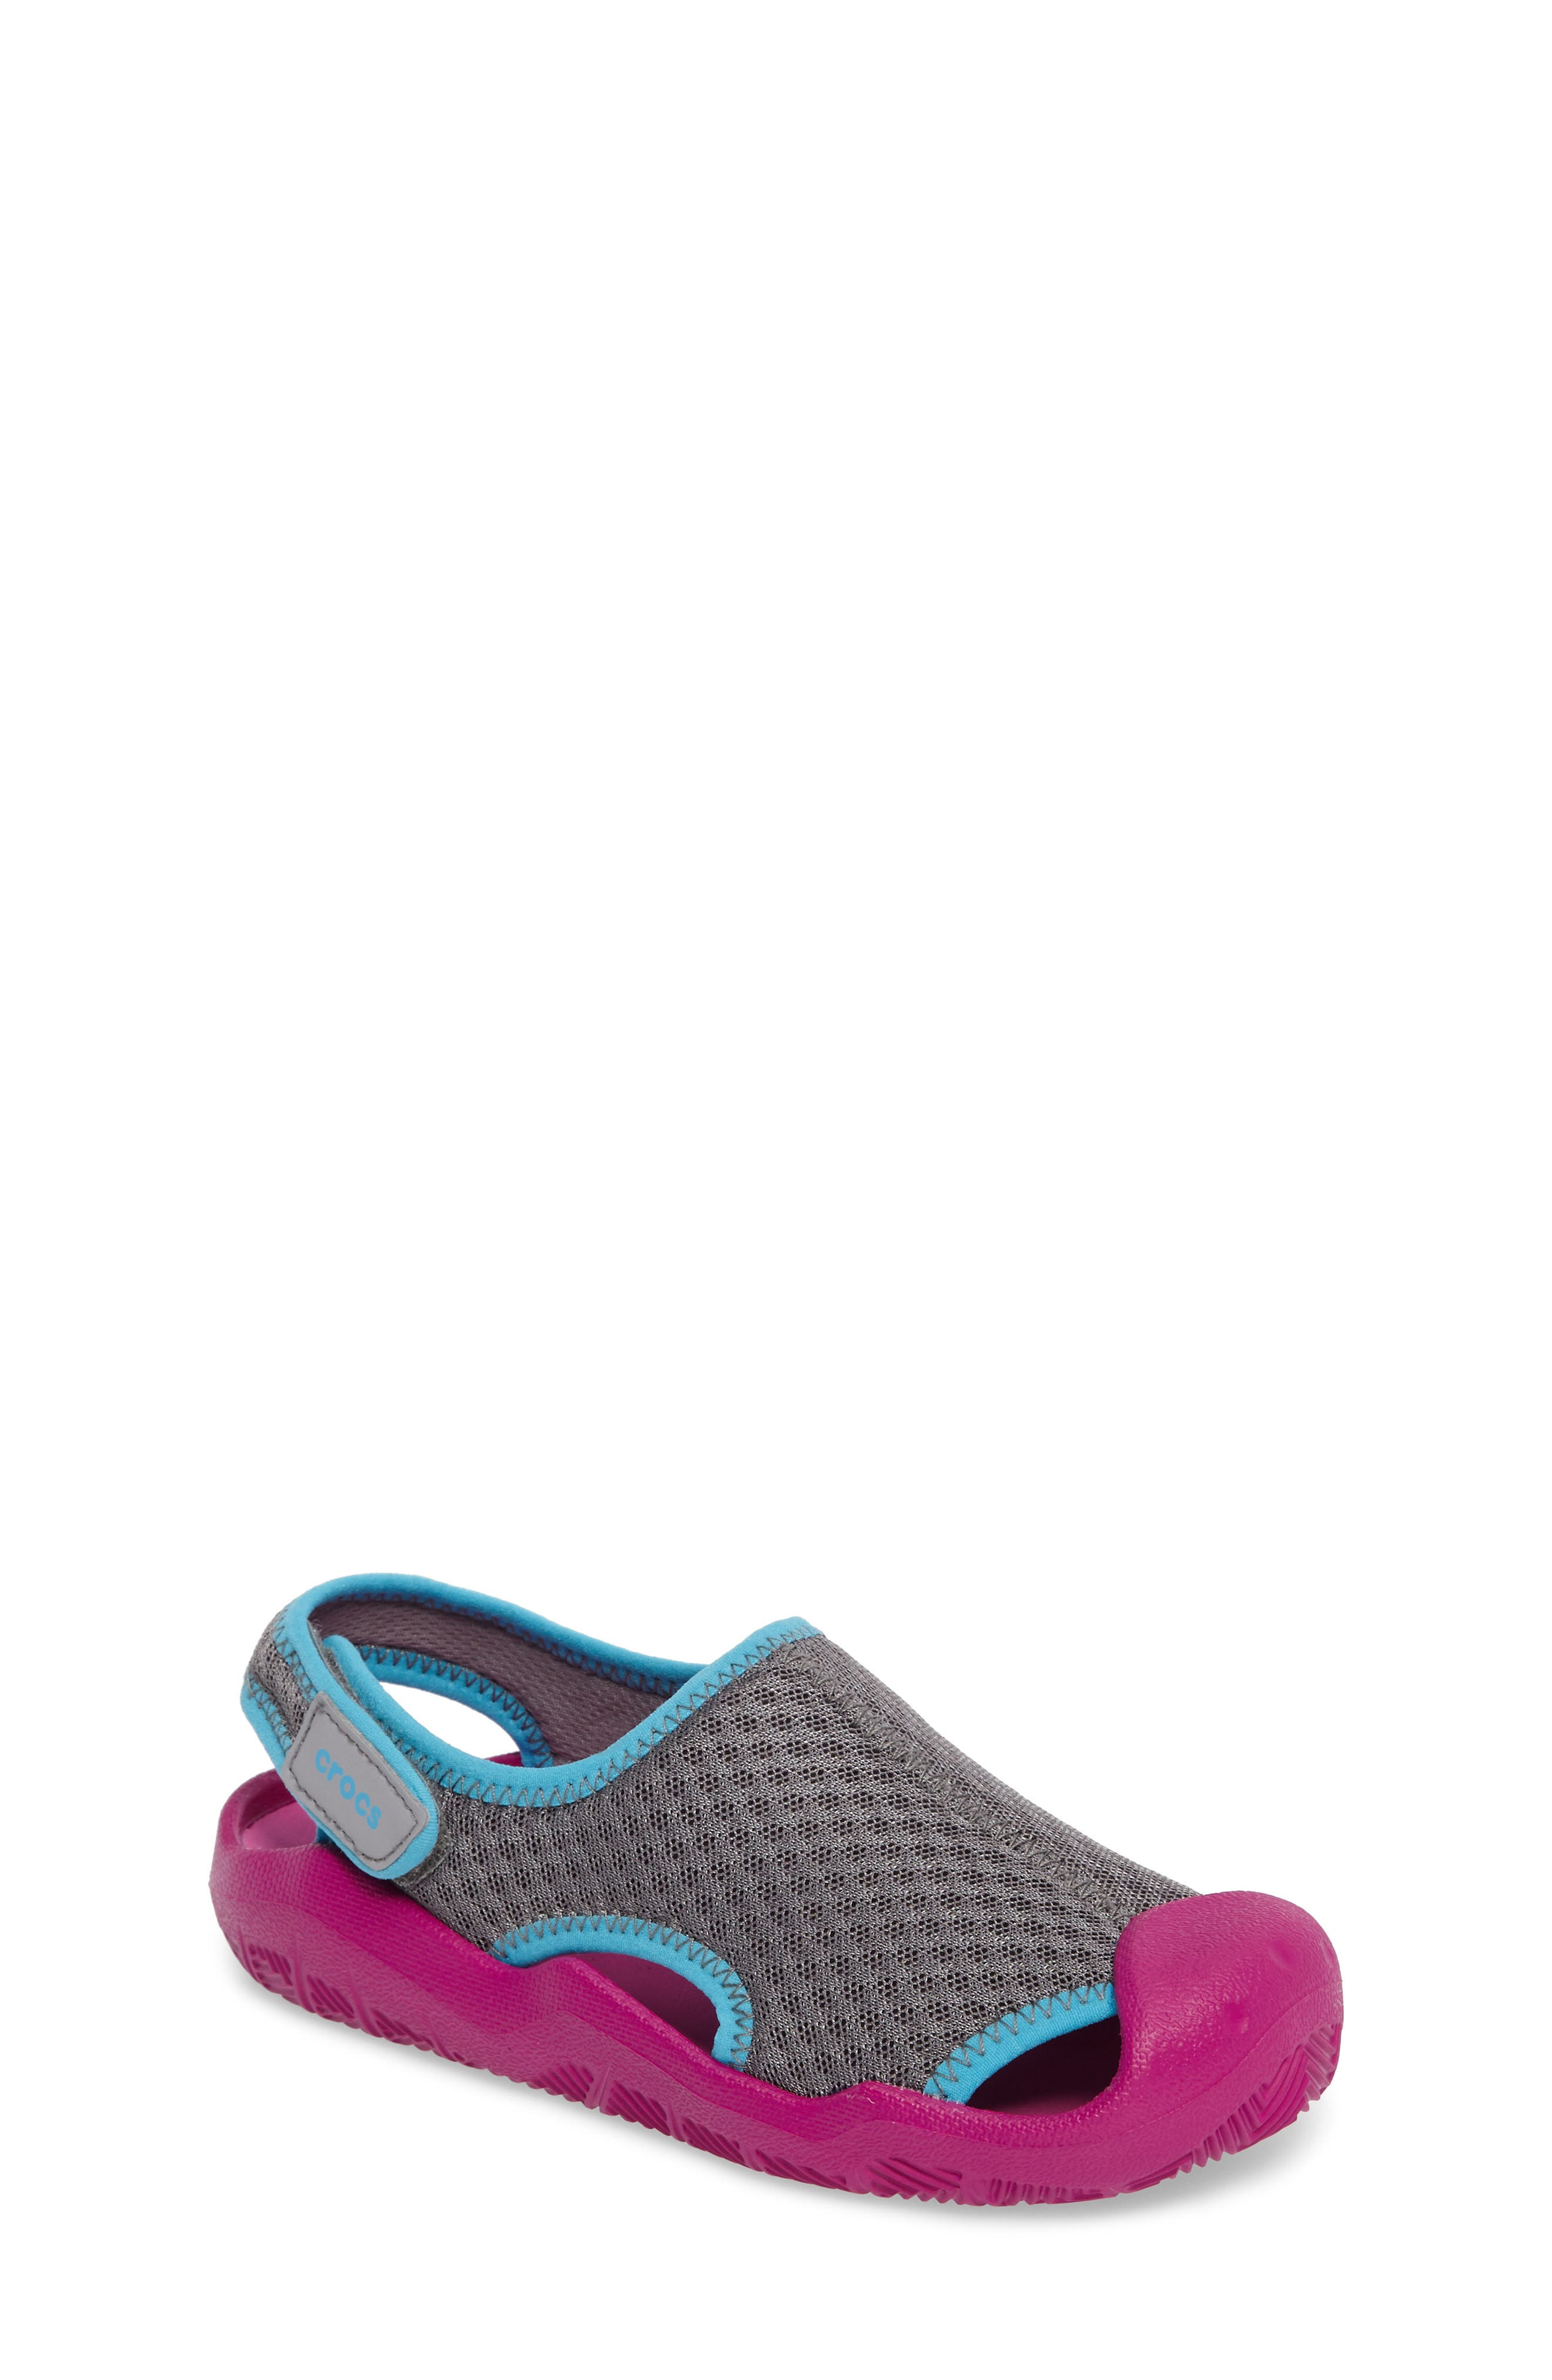 Swiftwater Sandal,                             Main thumbnail 1, color,                             057